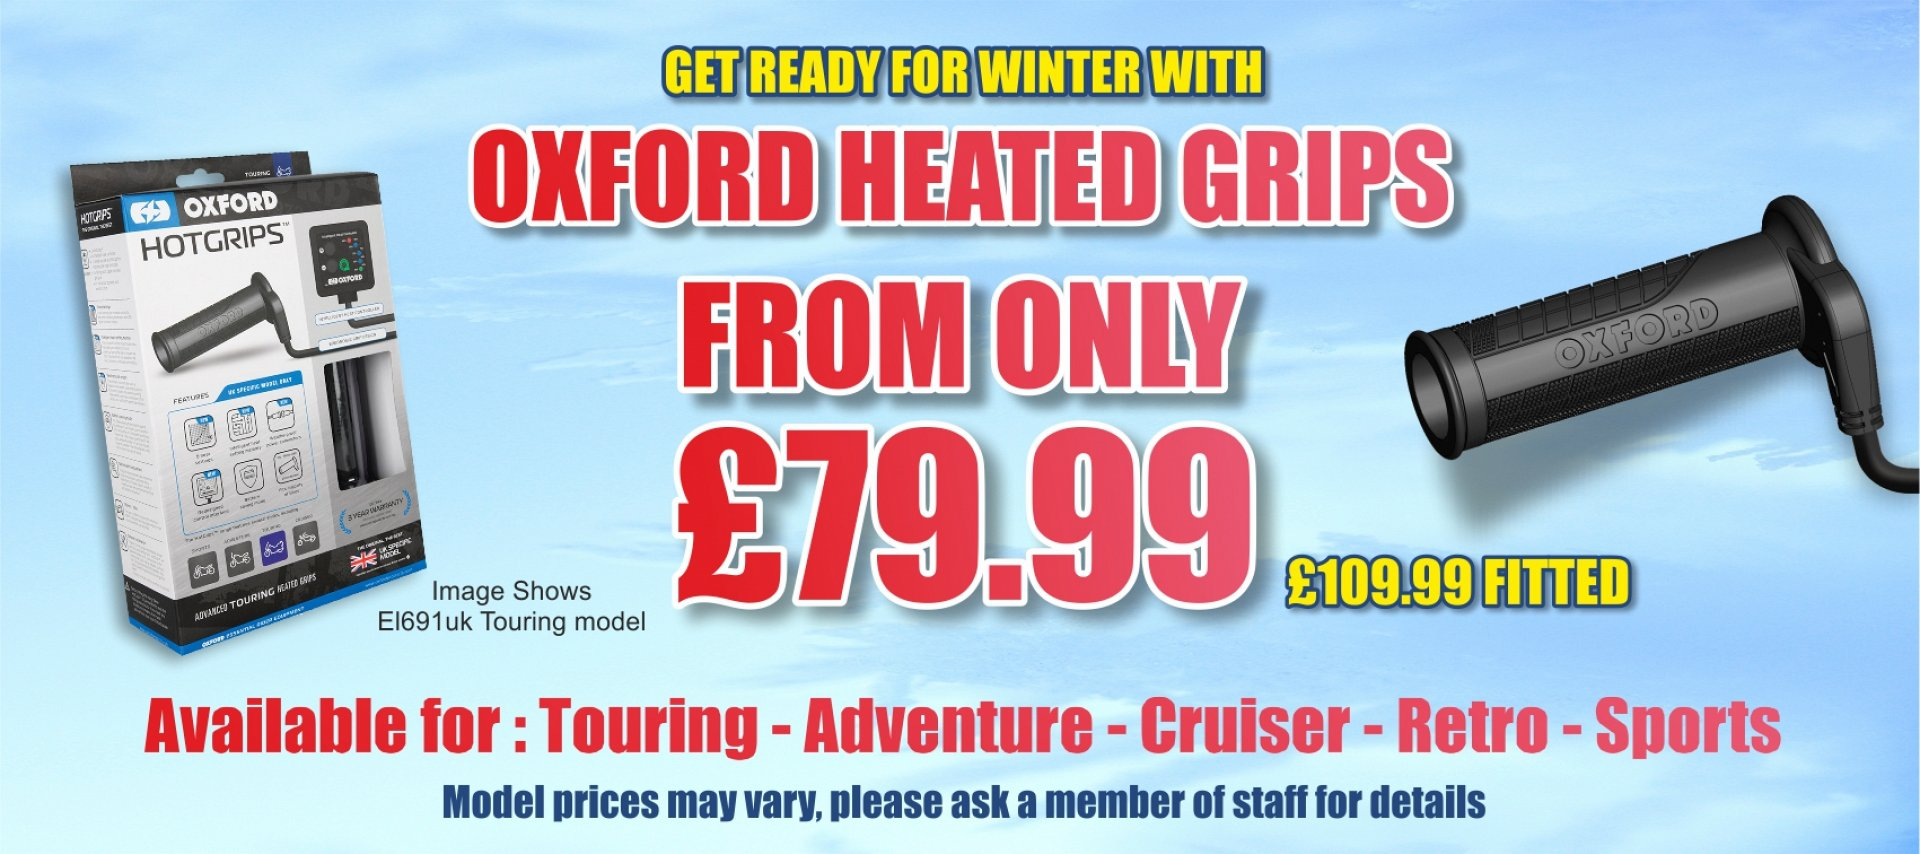 Fitted Heated Grips from £109.99